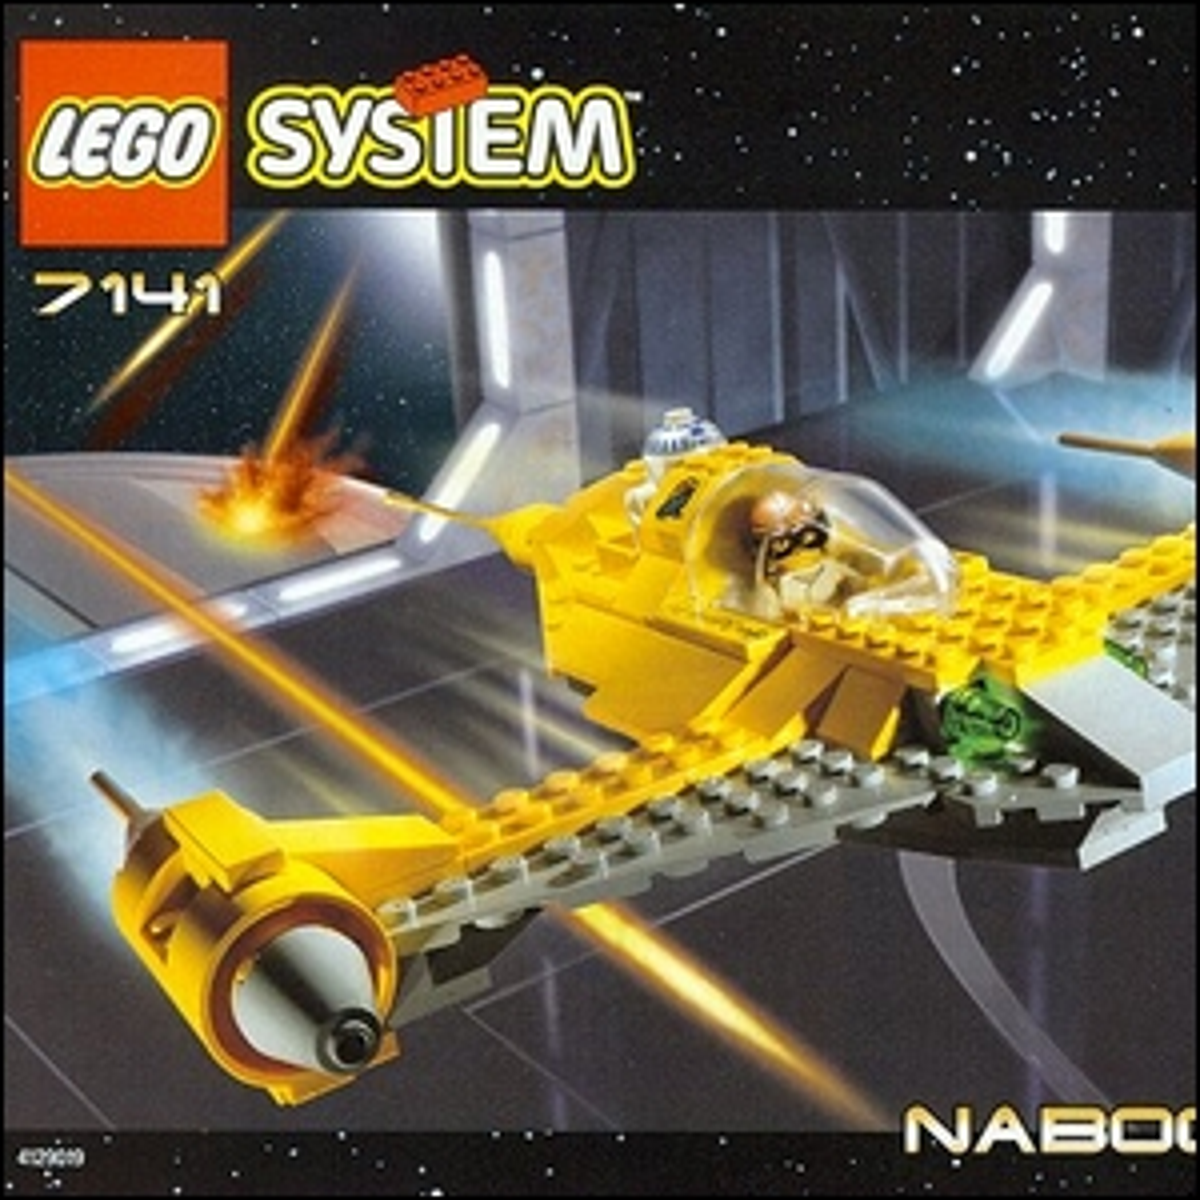 The cover art for the Star Wars Naboo Starfighter LEGO set.